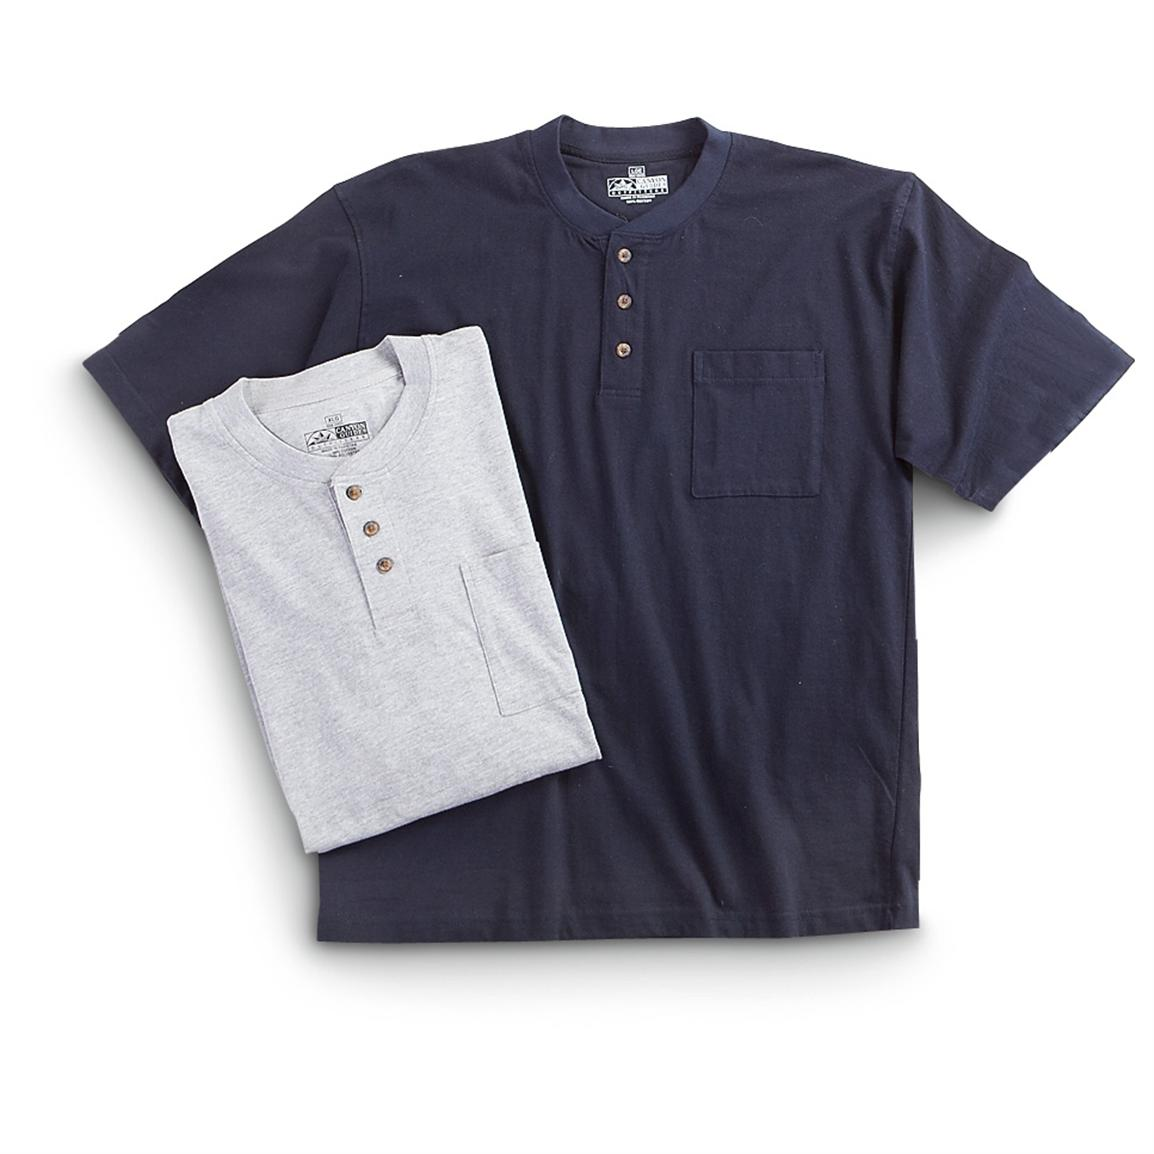 2 Canyon Guide® Short-sleeved Pocket Henleys, Gray / Navy